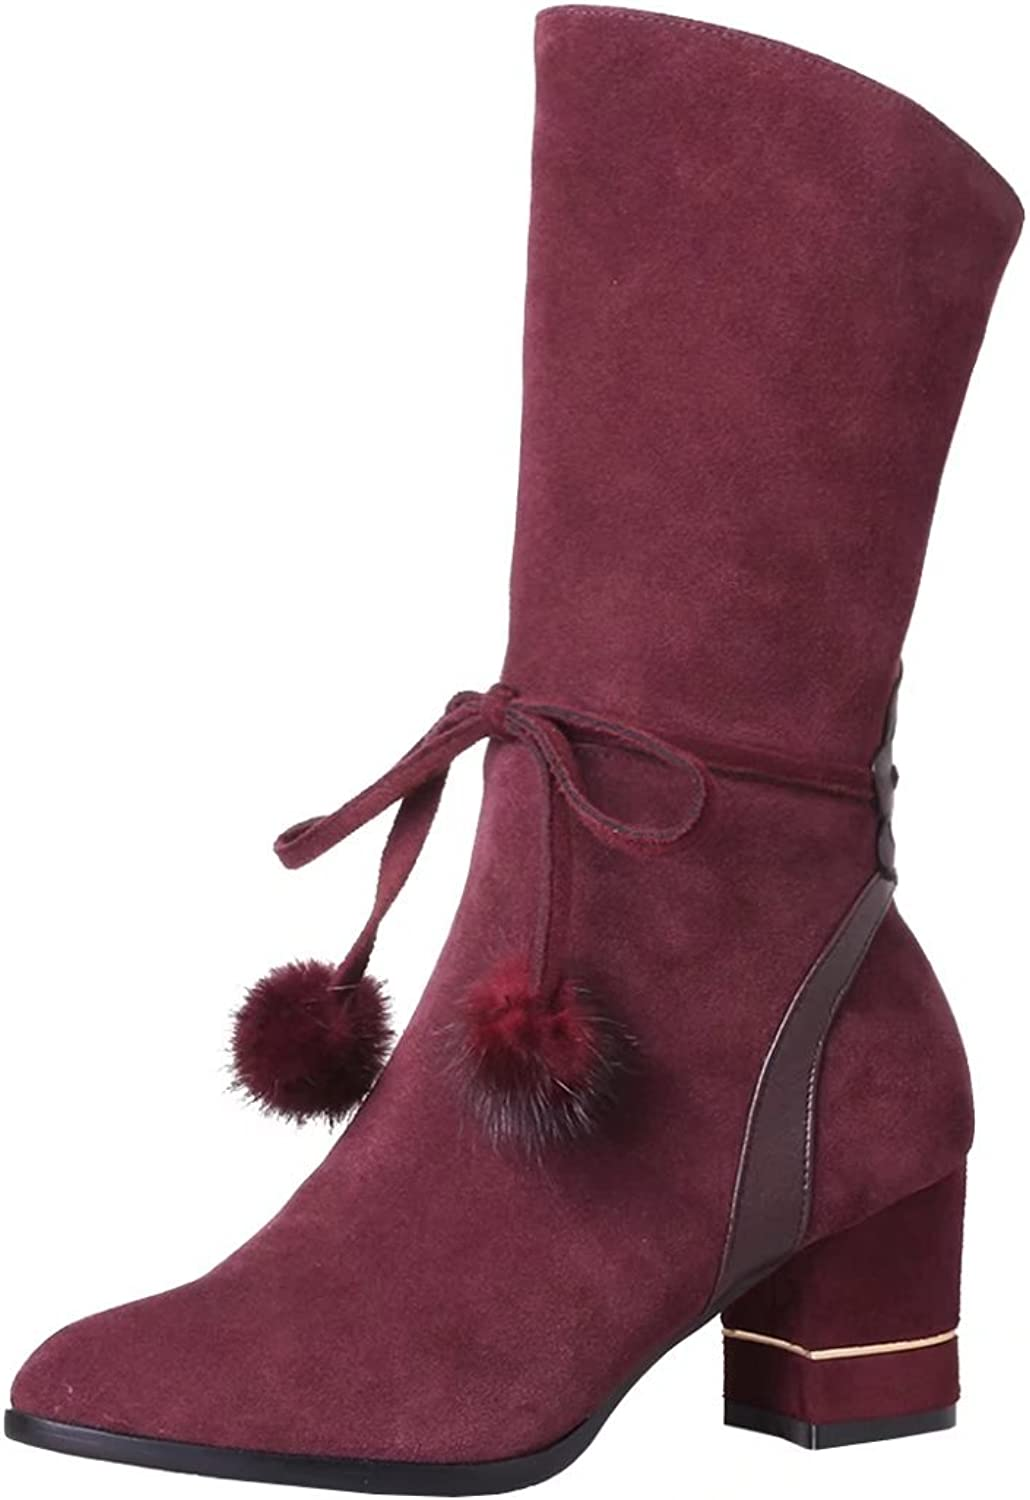 AIYOUMEI Women's Pointed Toe Block Heel Mid-Calf Boots with Fur Ball